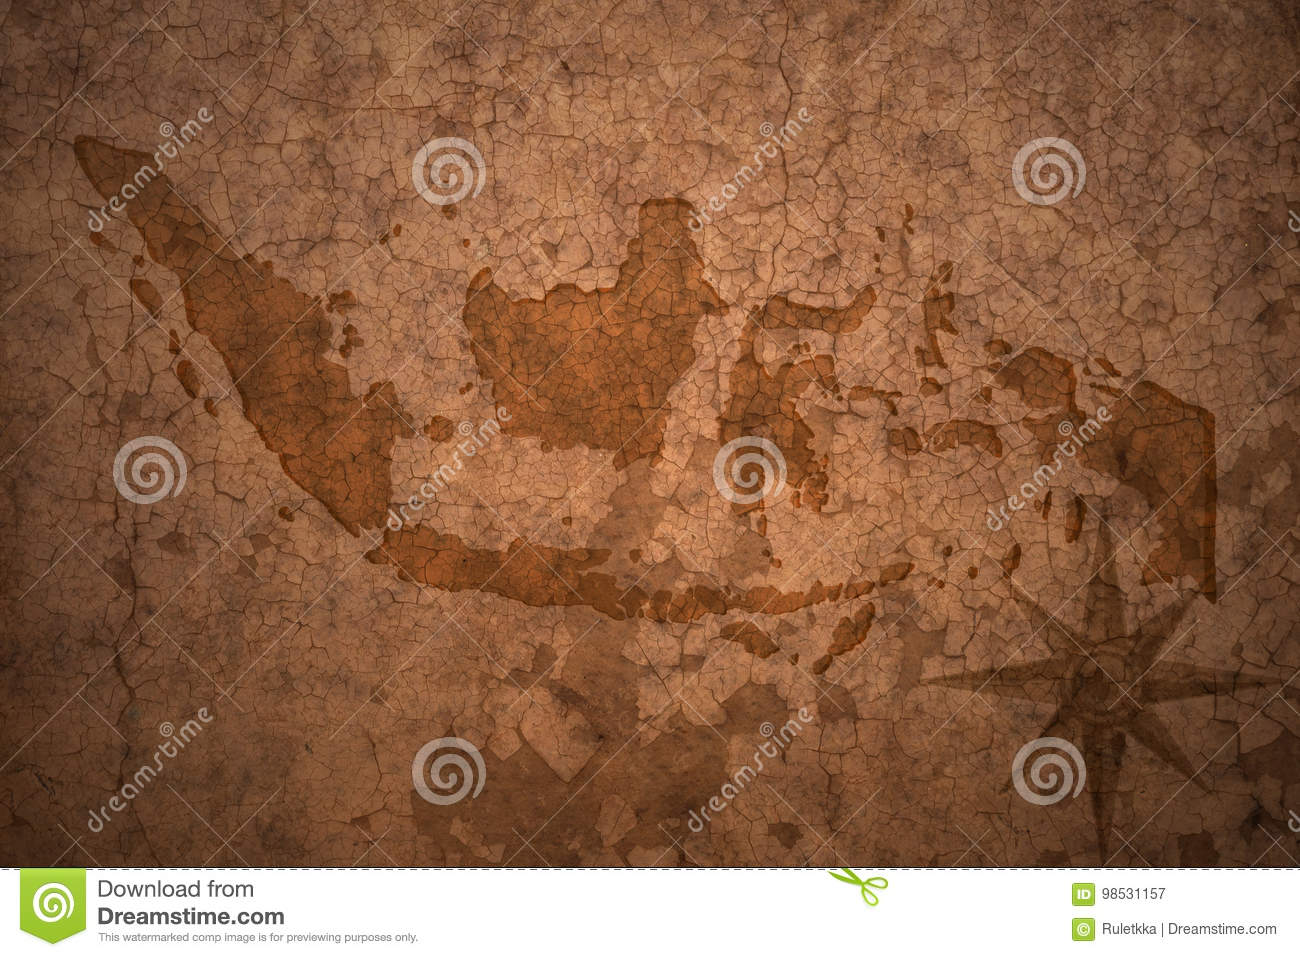 Indonesia map on vintage paper background